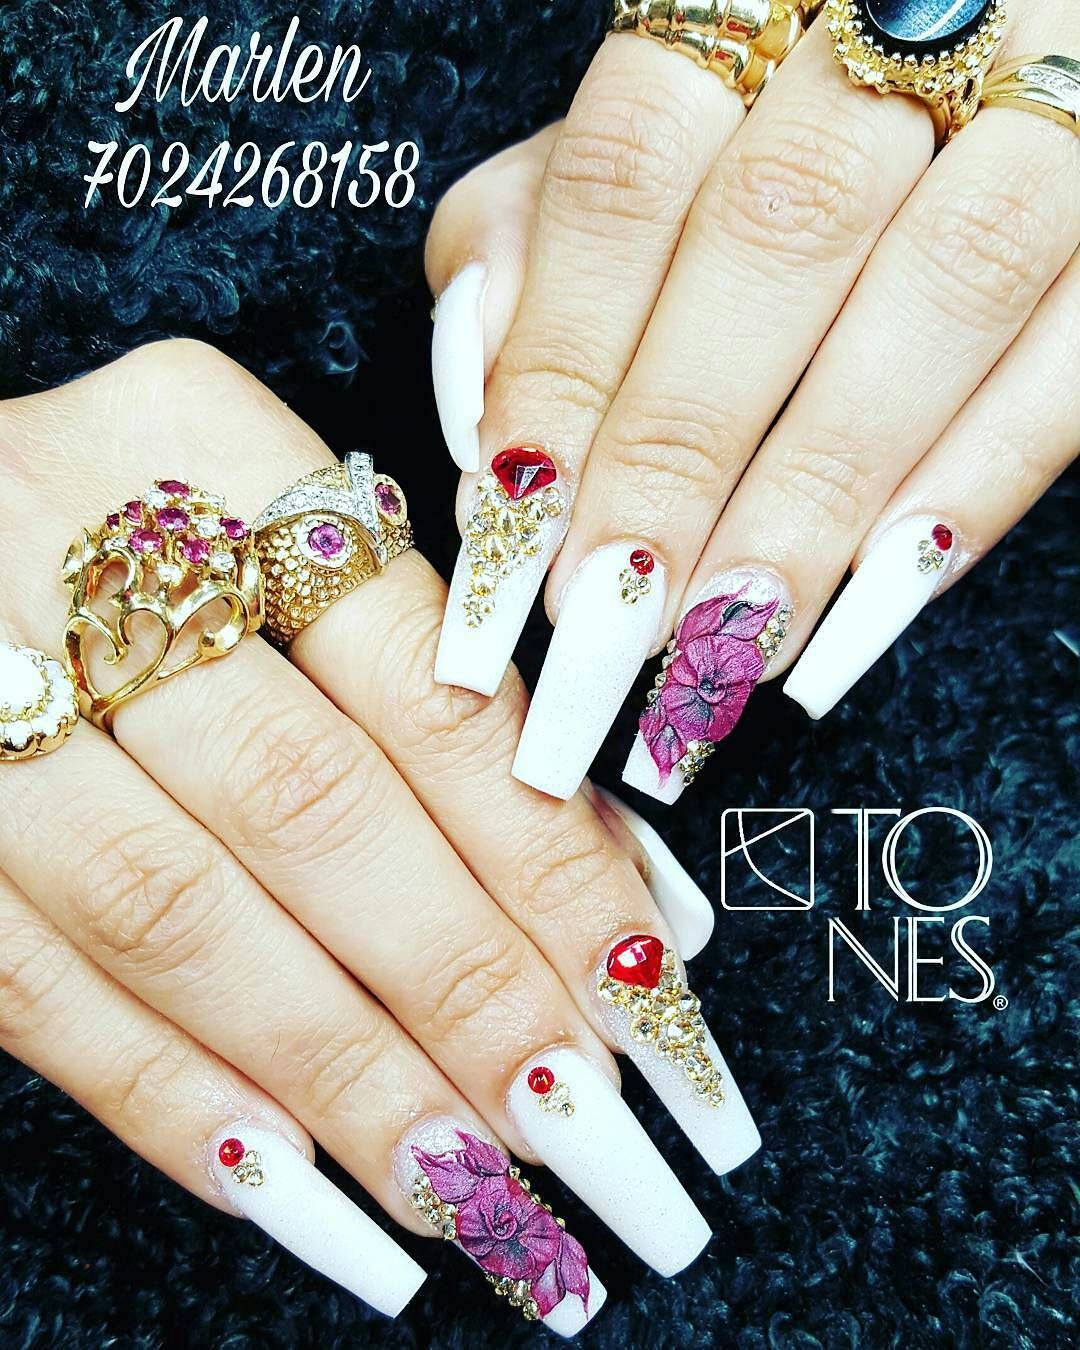 Amazing nail art made using tones products tones nail art amazing nail art made using tones products prinsesfo Gallery